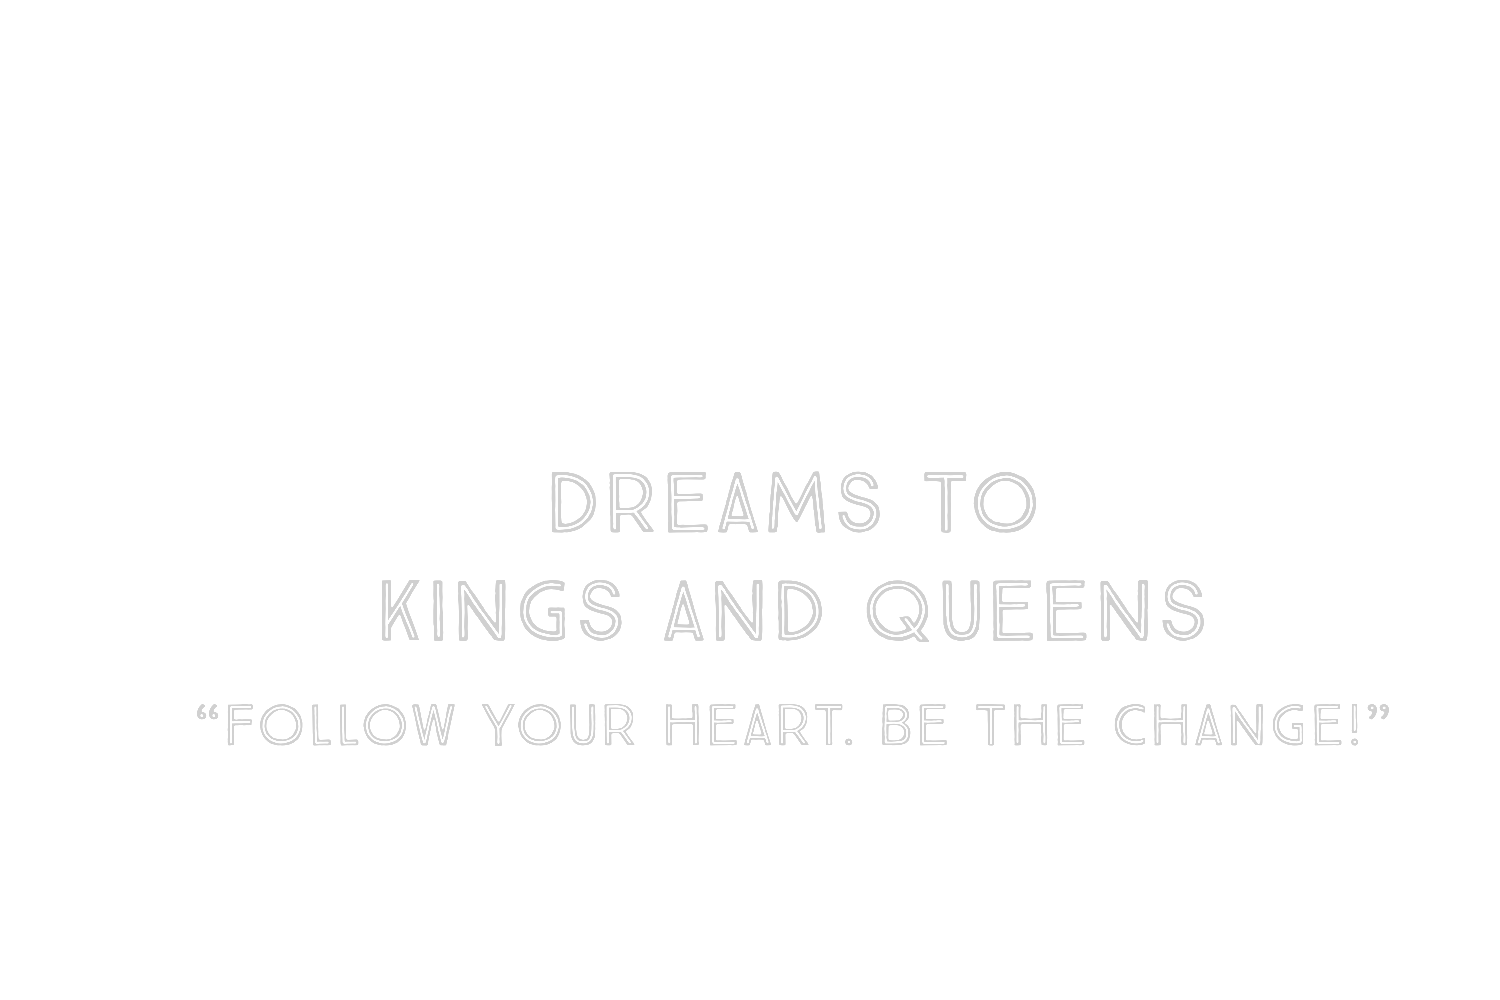 Dreams To Kings and Queens